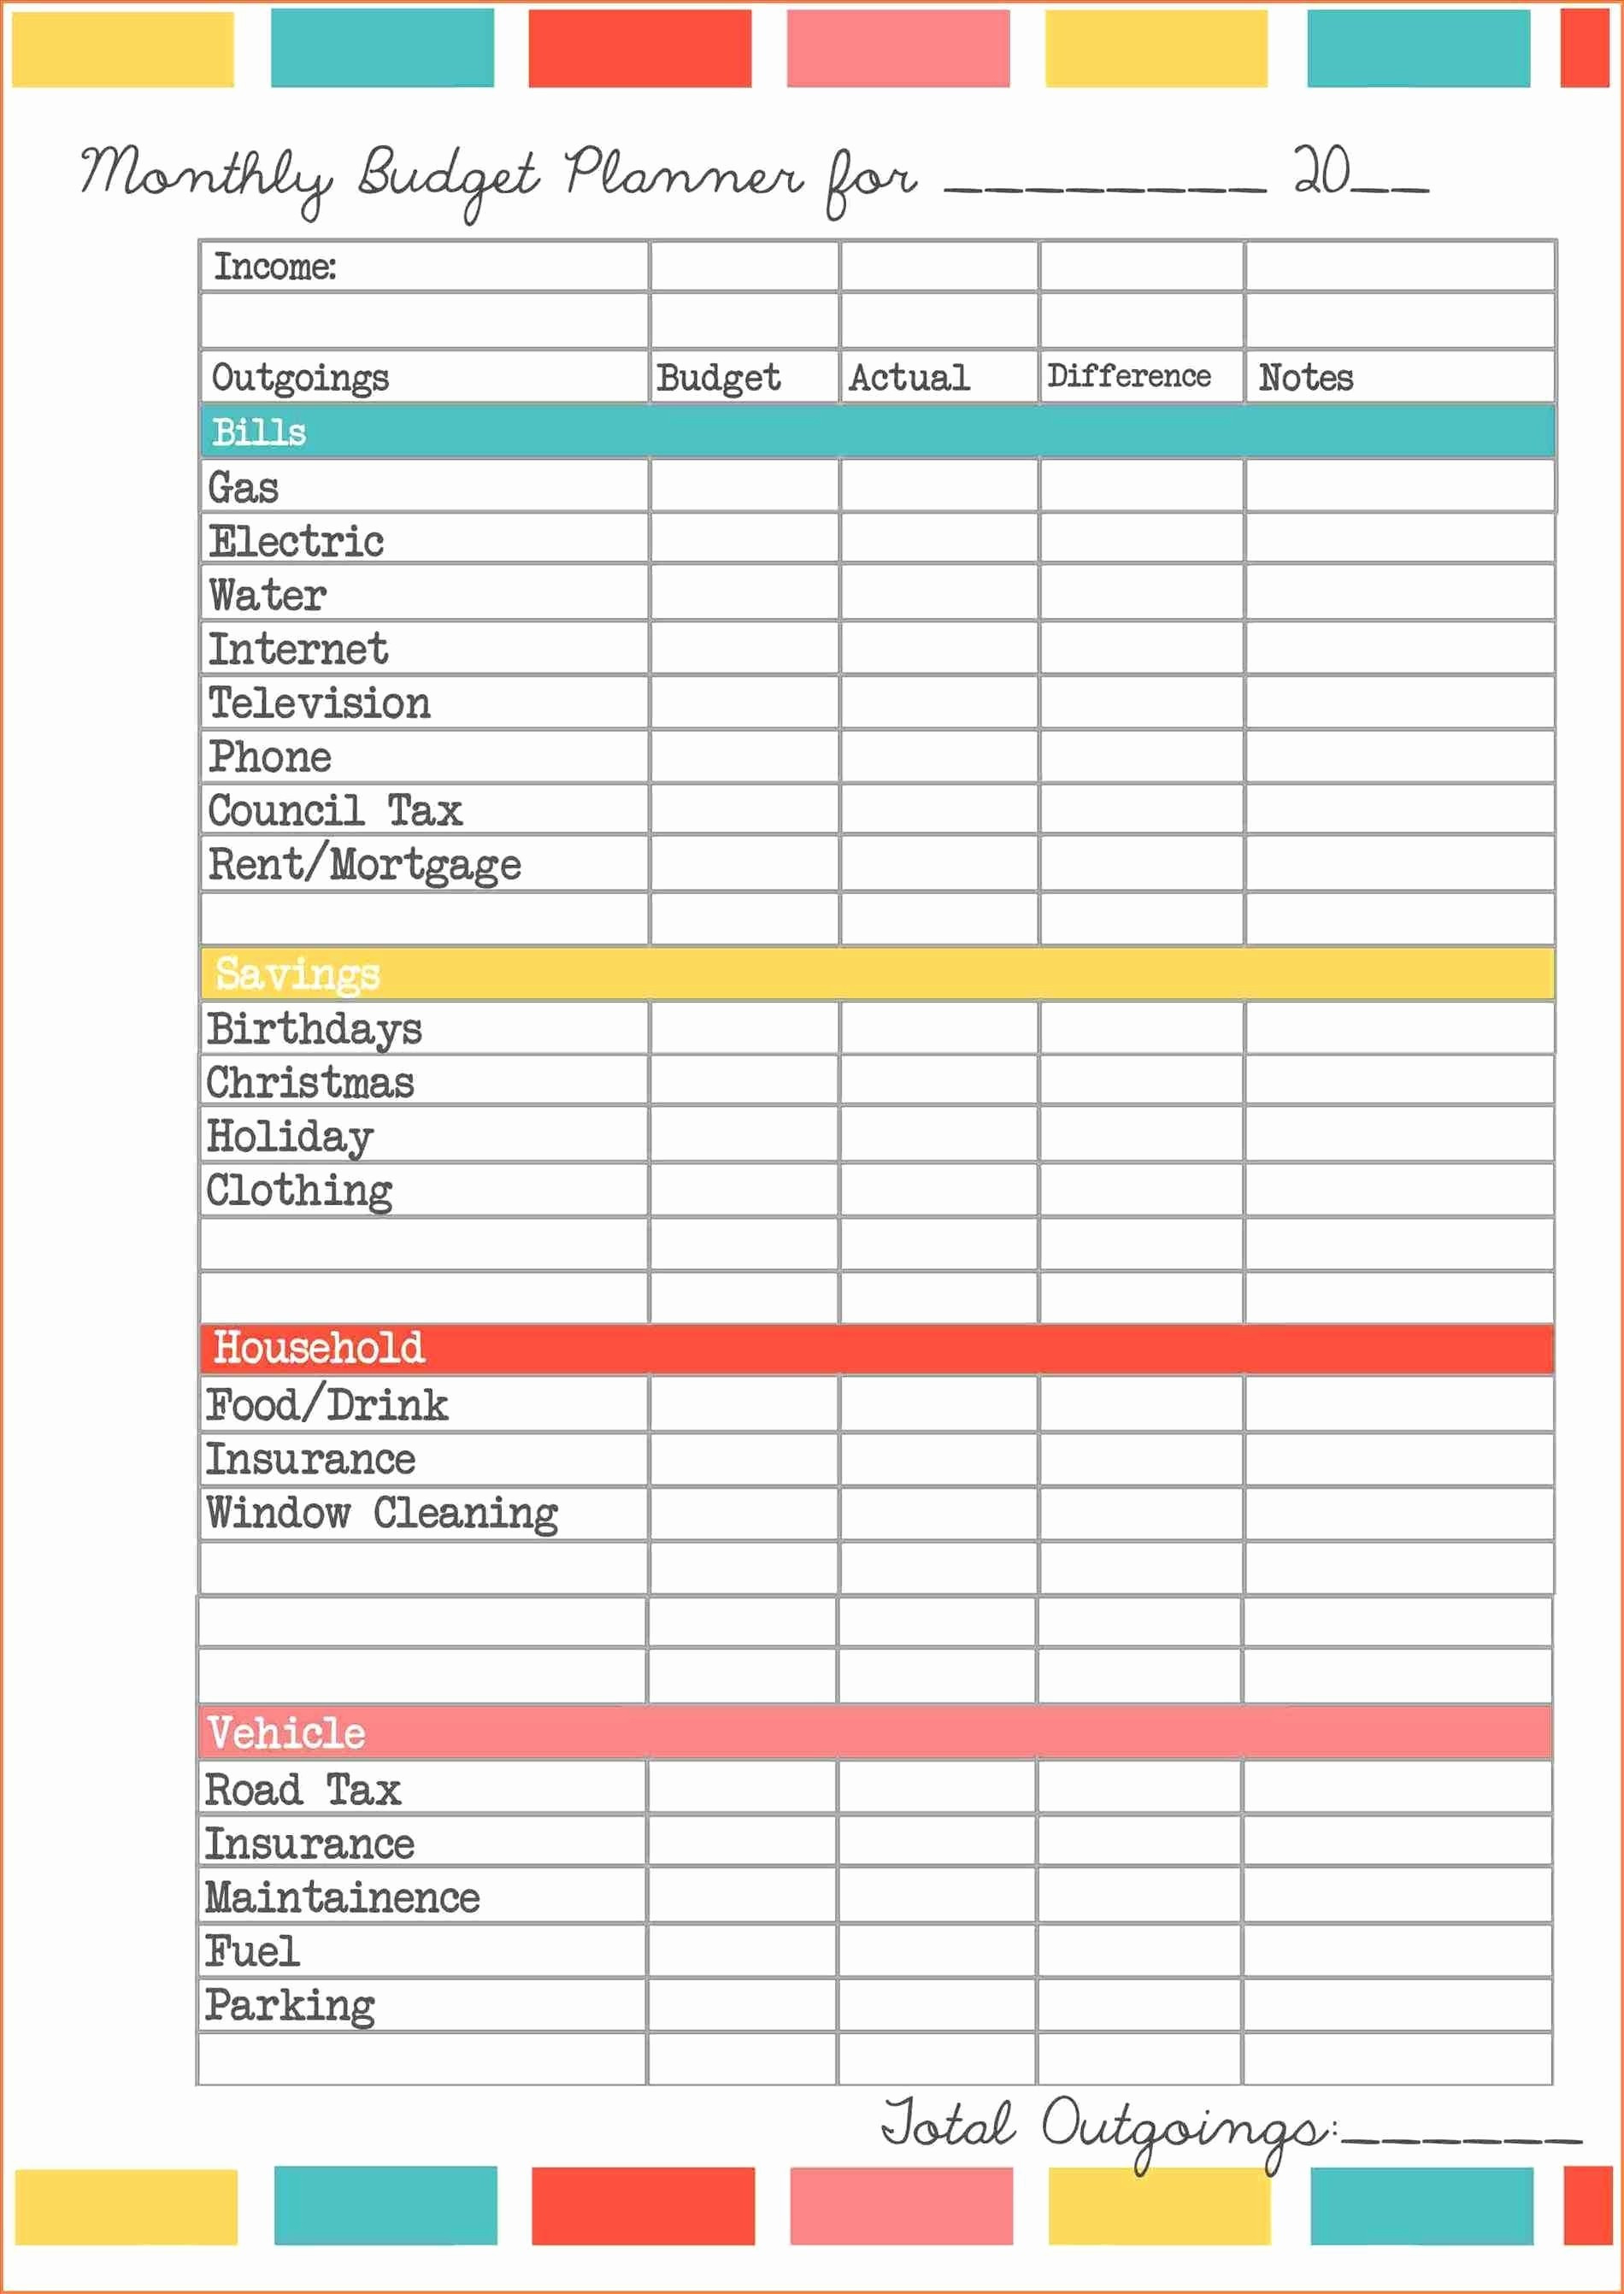 Accounting Spreadsheet Templates For Small Business Free Downloads Throughout Accounting Spreadsheet For Small Business